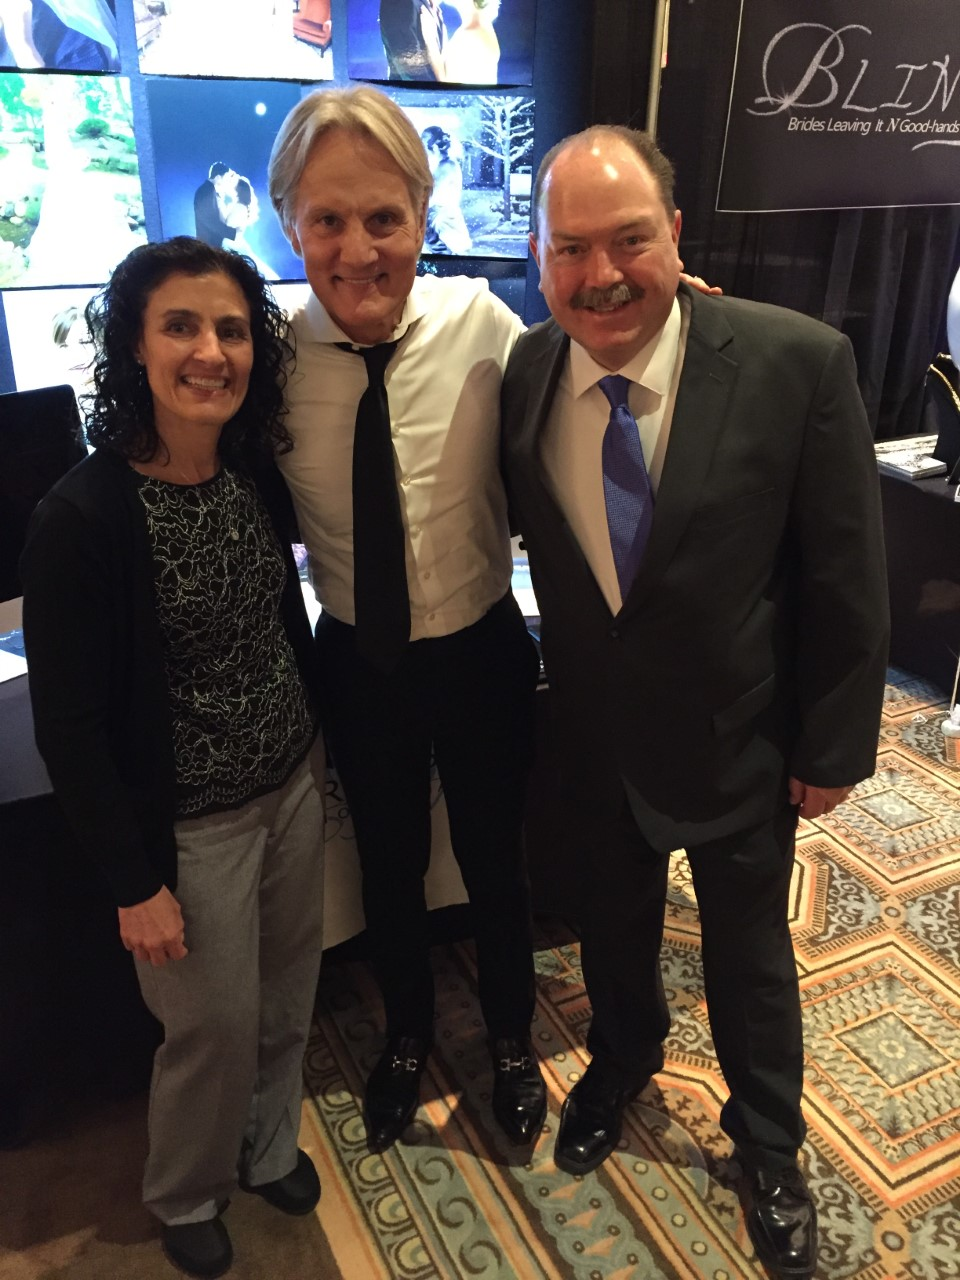 Brett and his wife Debbie with Monte Durham.